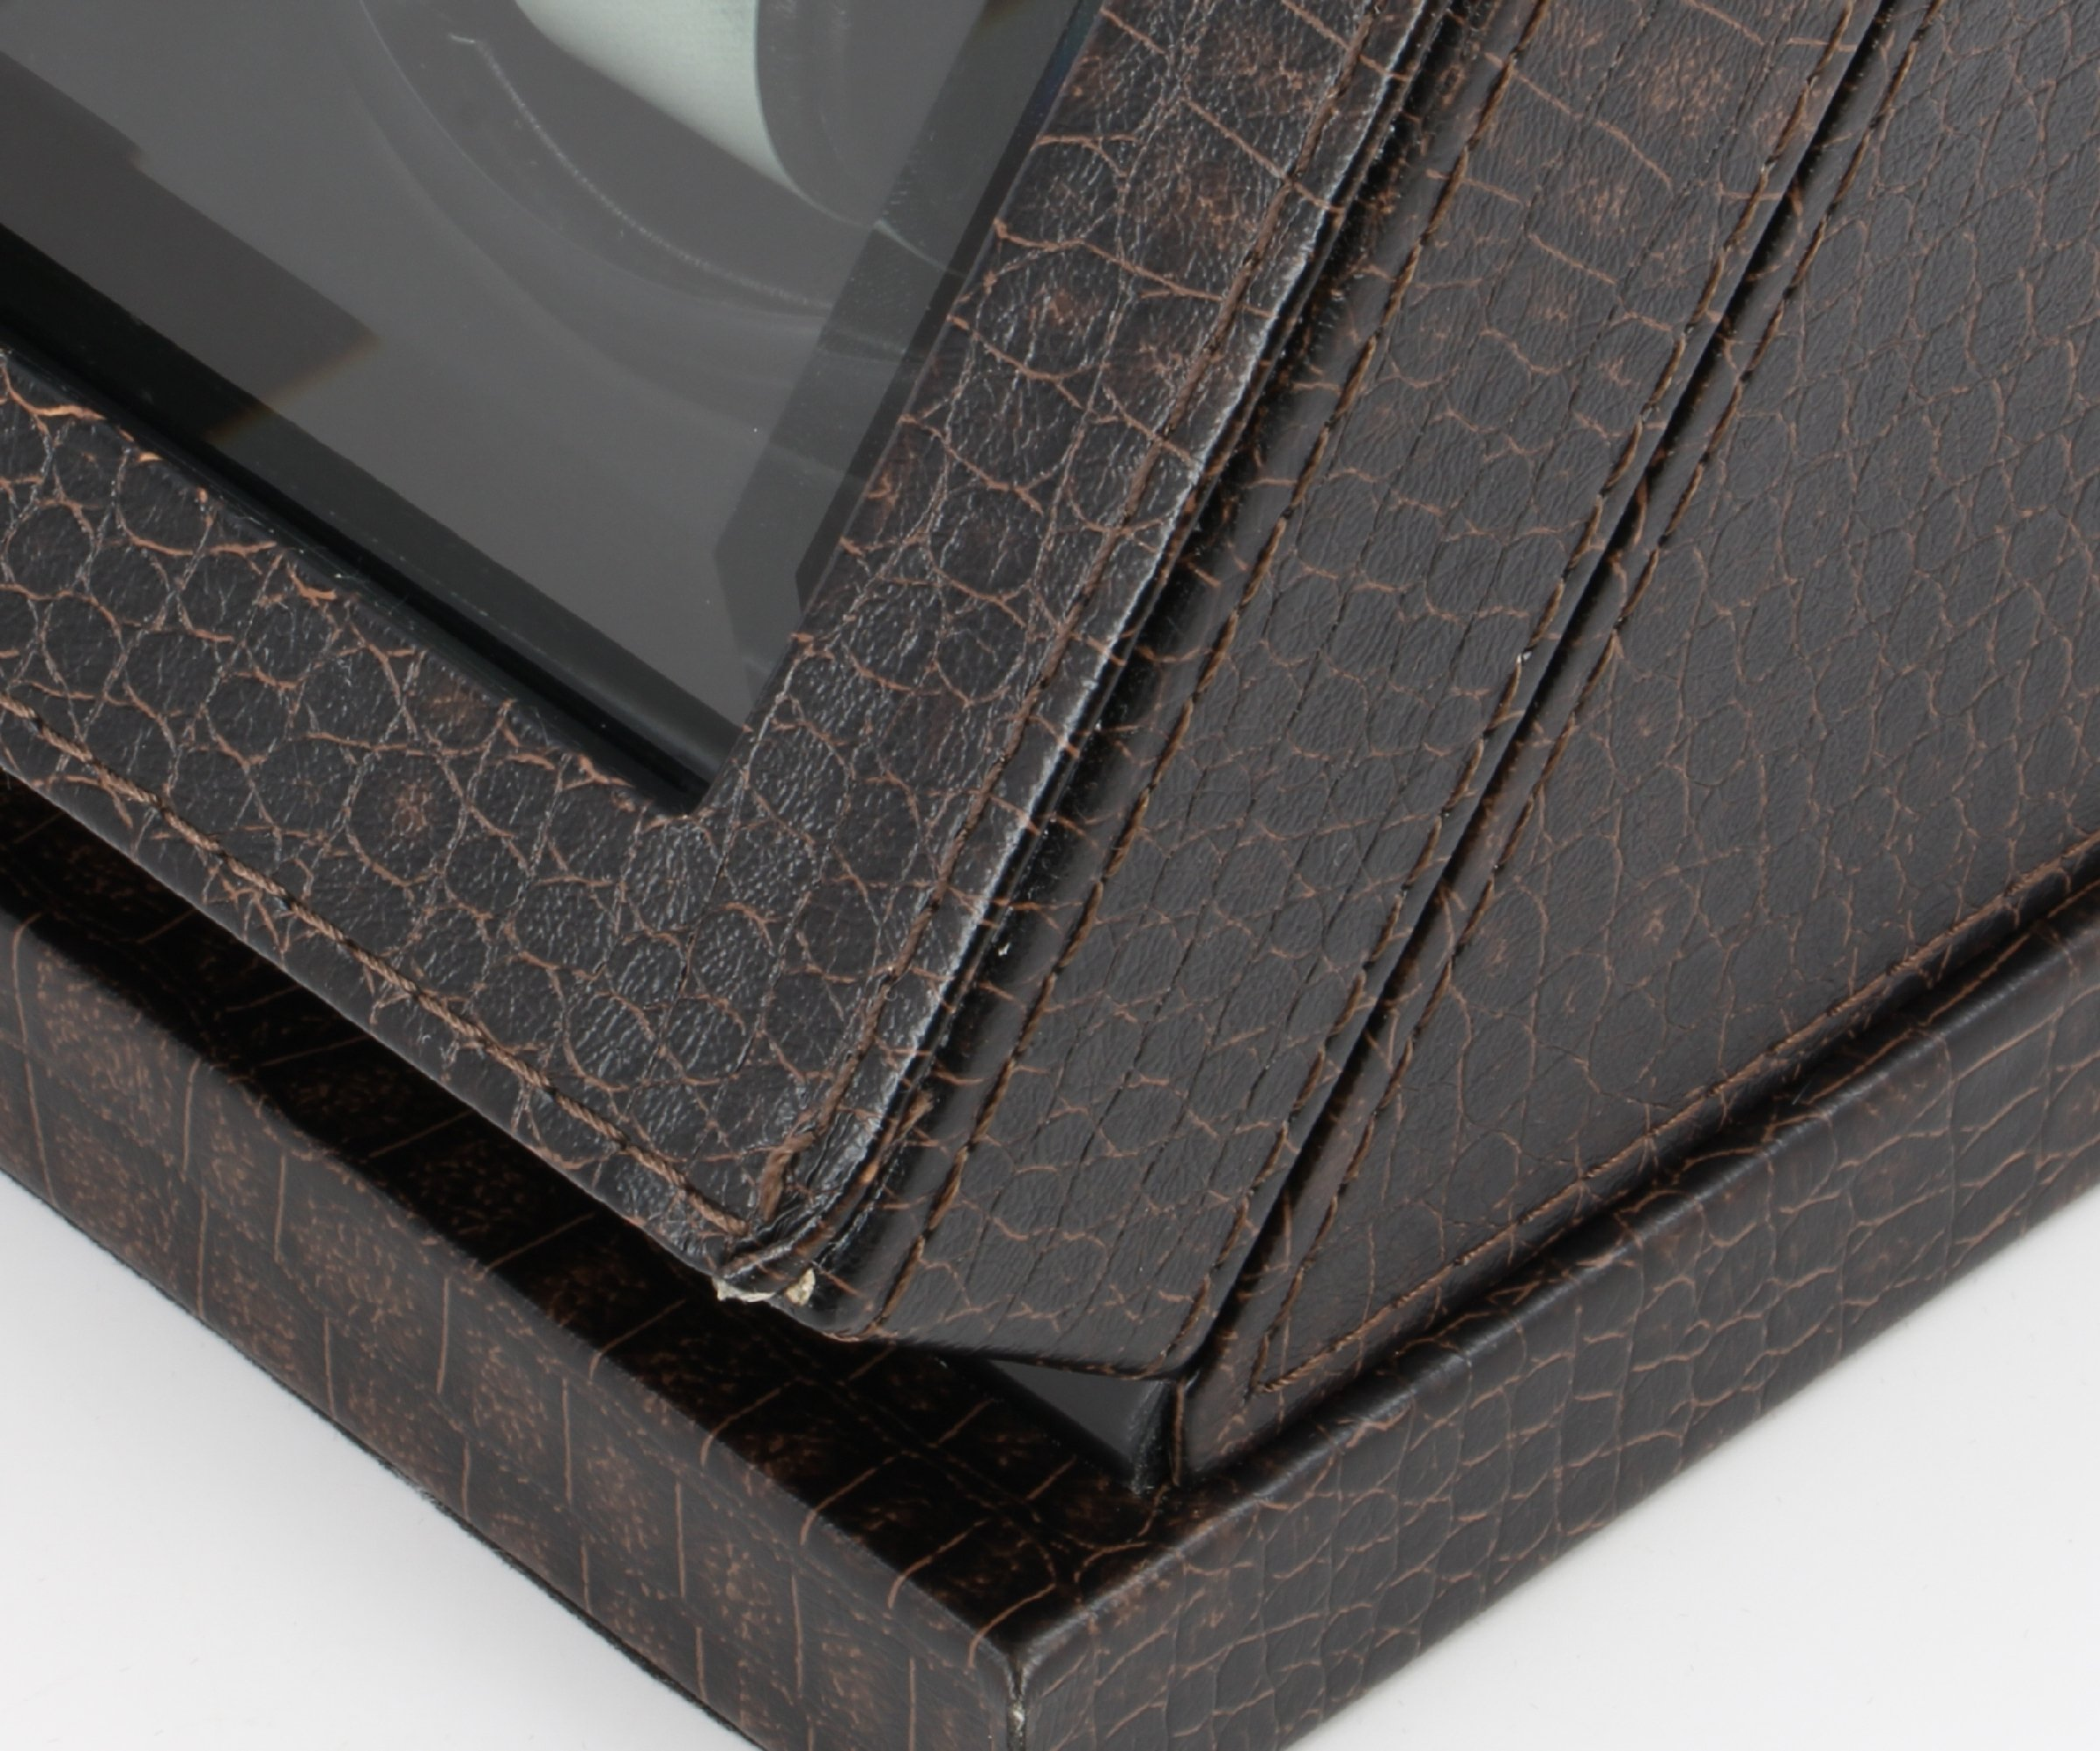 New Automatic Watch Winder Rotater Crocodile leather FinishBox 7.25 ''W x 6.25 ''D x 6.0 ''H (coFFee brown)